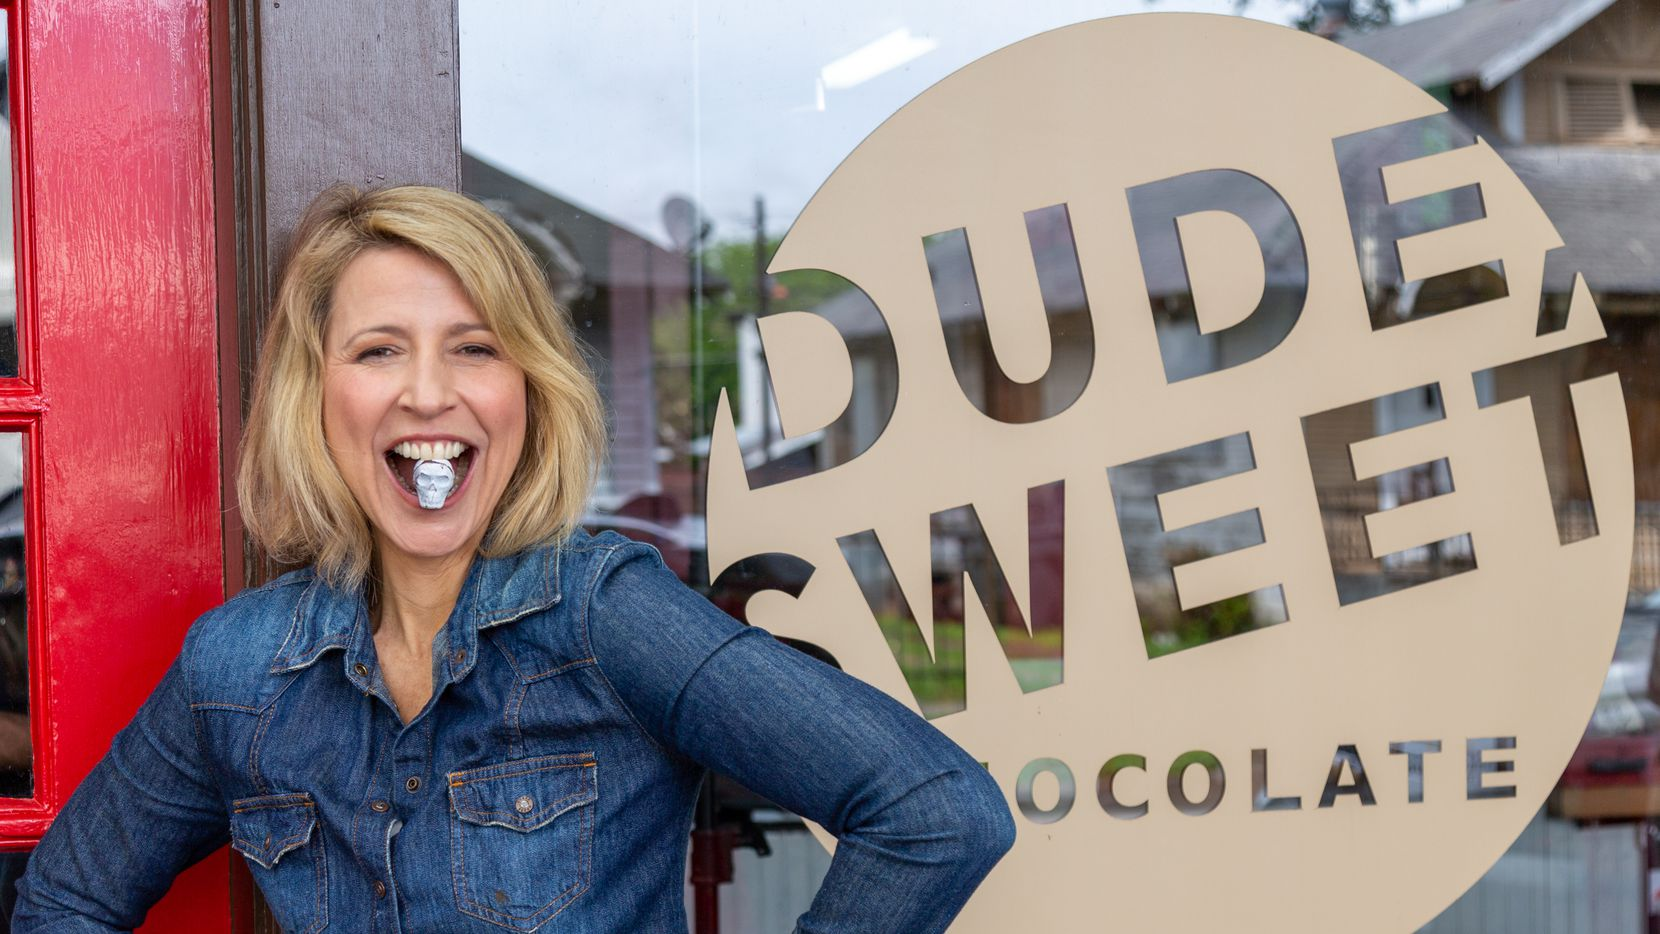 Television host Samantha Brown visits Dude, Sweet Chocolate in Dallas as part of her PBS show 'Places to Love.'